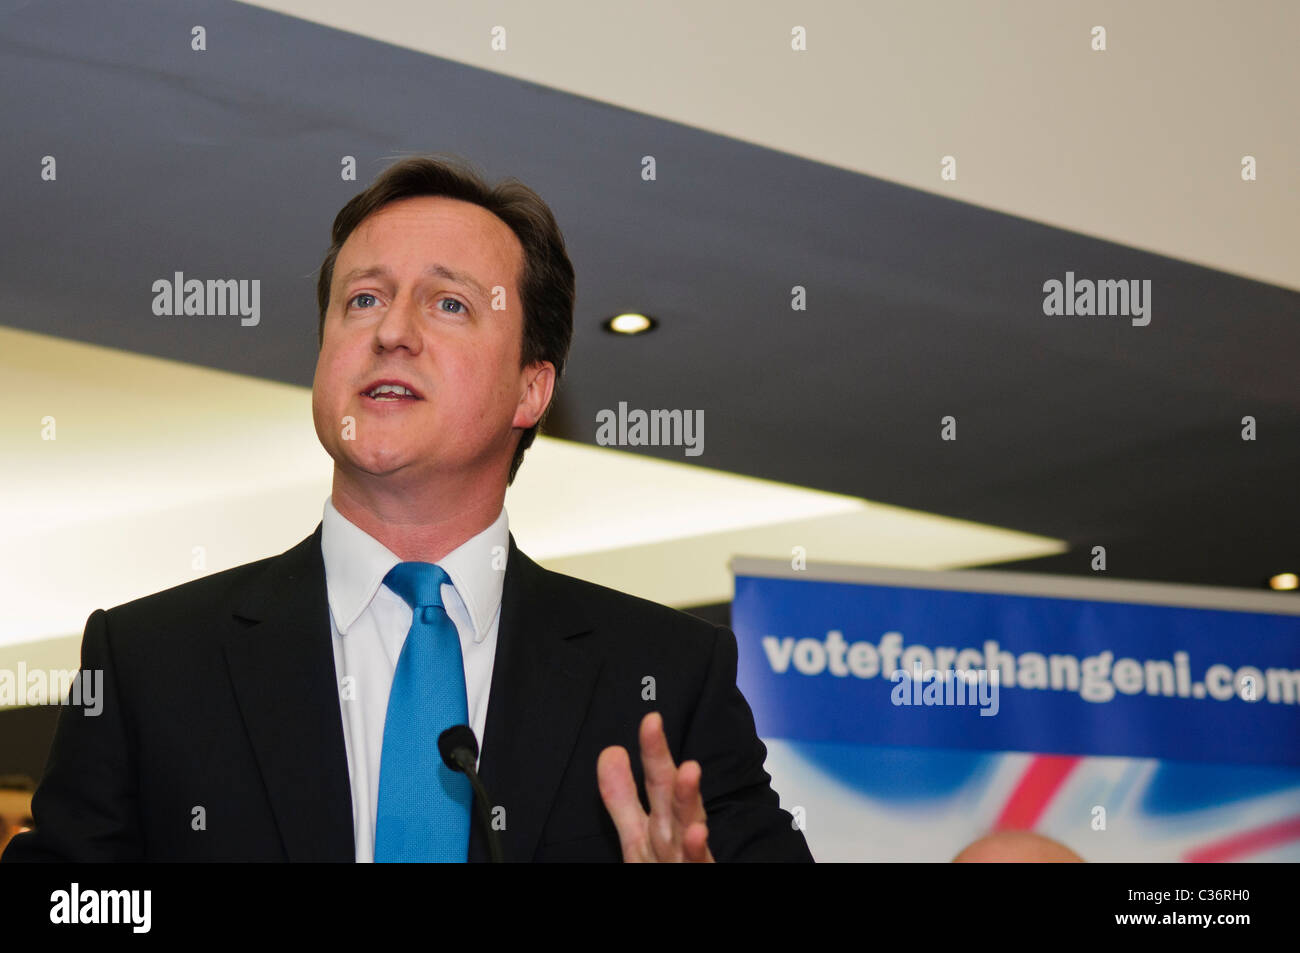 David Cameron visits the Ulster Unionist Party, Belfast, May 2010 Stock Photo